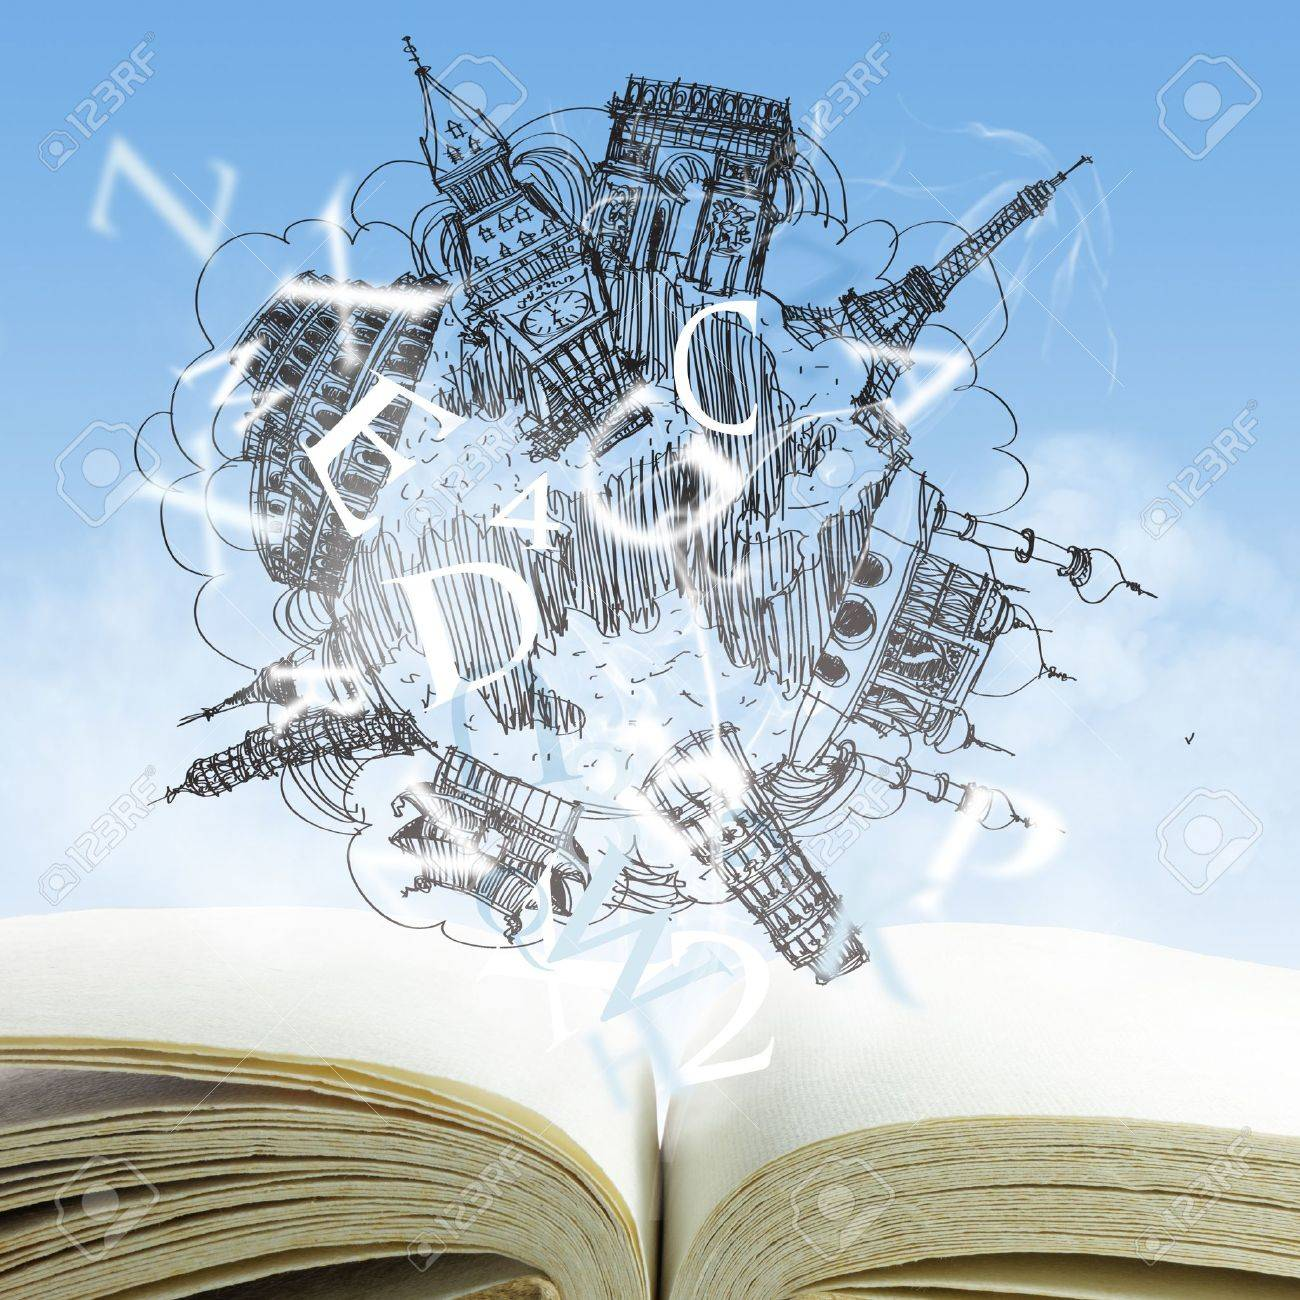 open book and drawing dream travel - 16097365